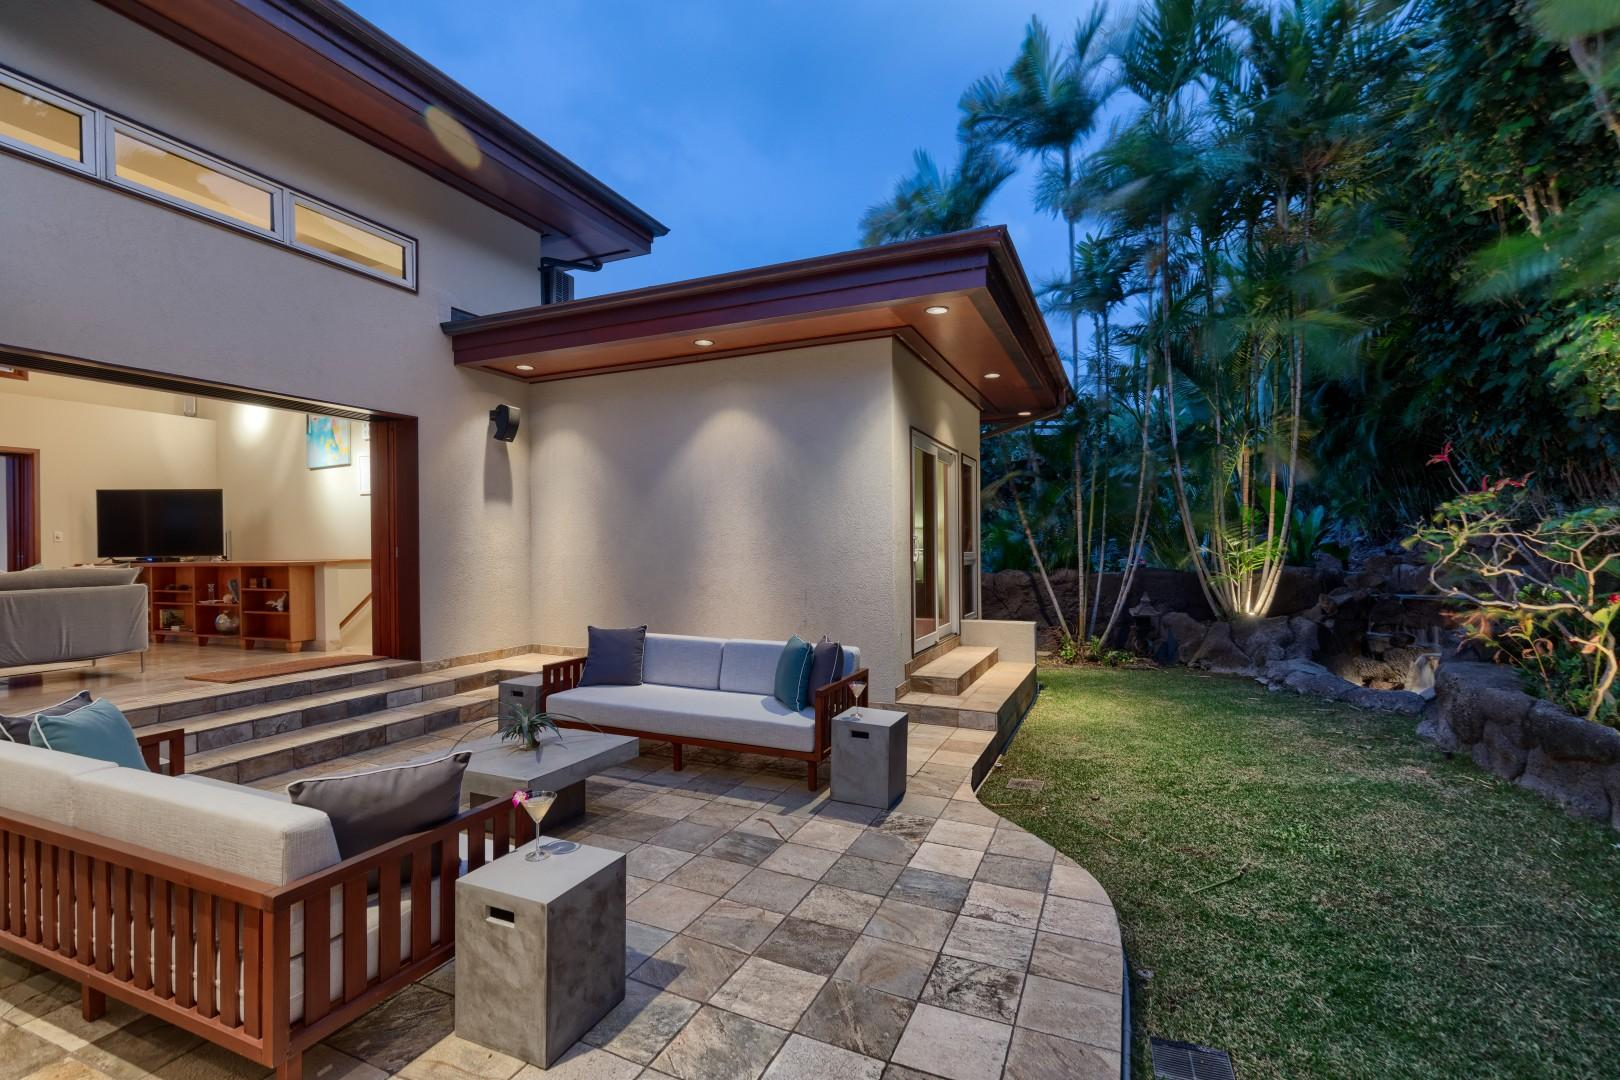 View of the serene backyard from the jacuzzi and barbecue area.